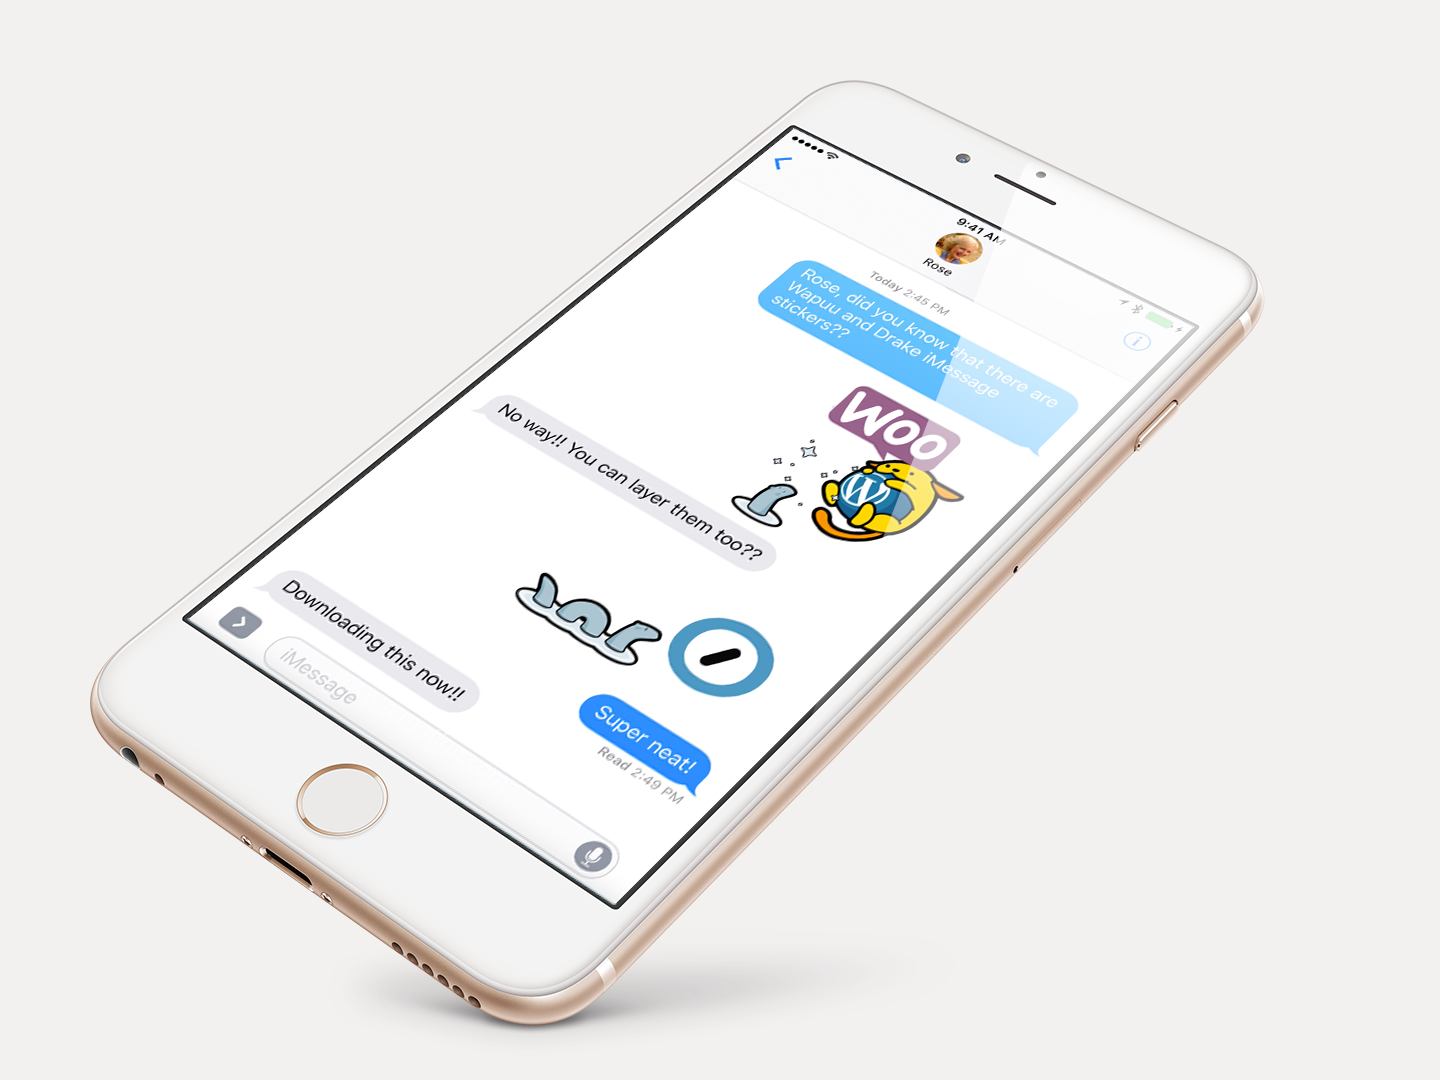 Express Yourself with New WordPress Stickers for iOS and iMessage